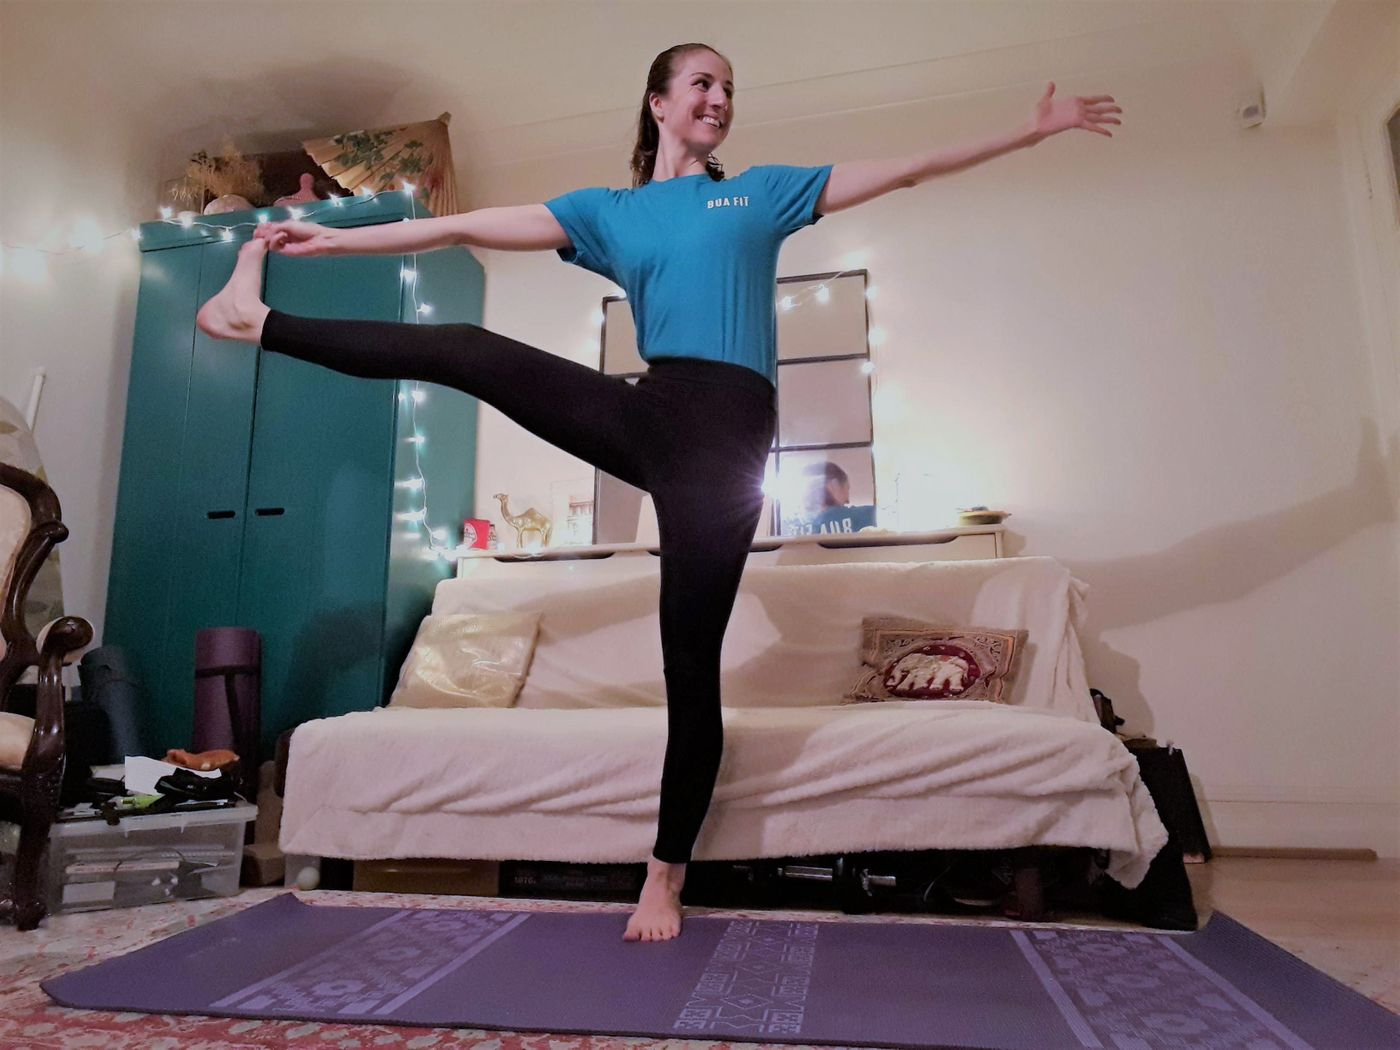 Working at a desk? Take regular breaks to move, stretch and look at something in the distance to help you stay alert and ward off getting too stiff! How about a 1 minute dance around the living room or 5-10 minutes of yoga?